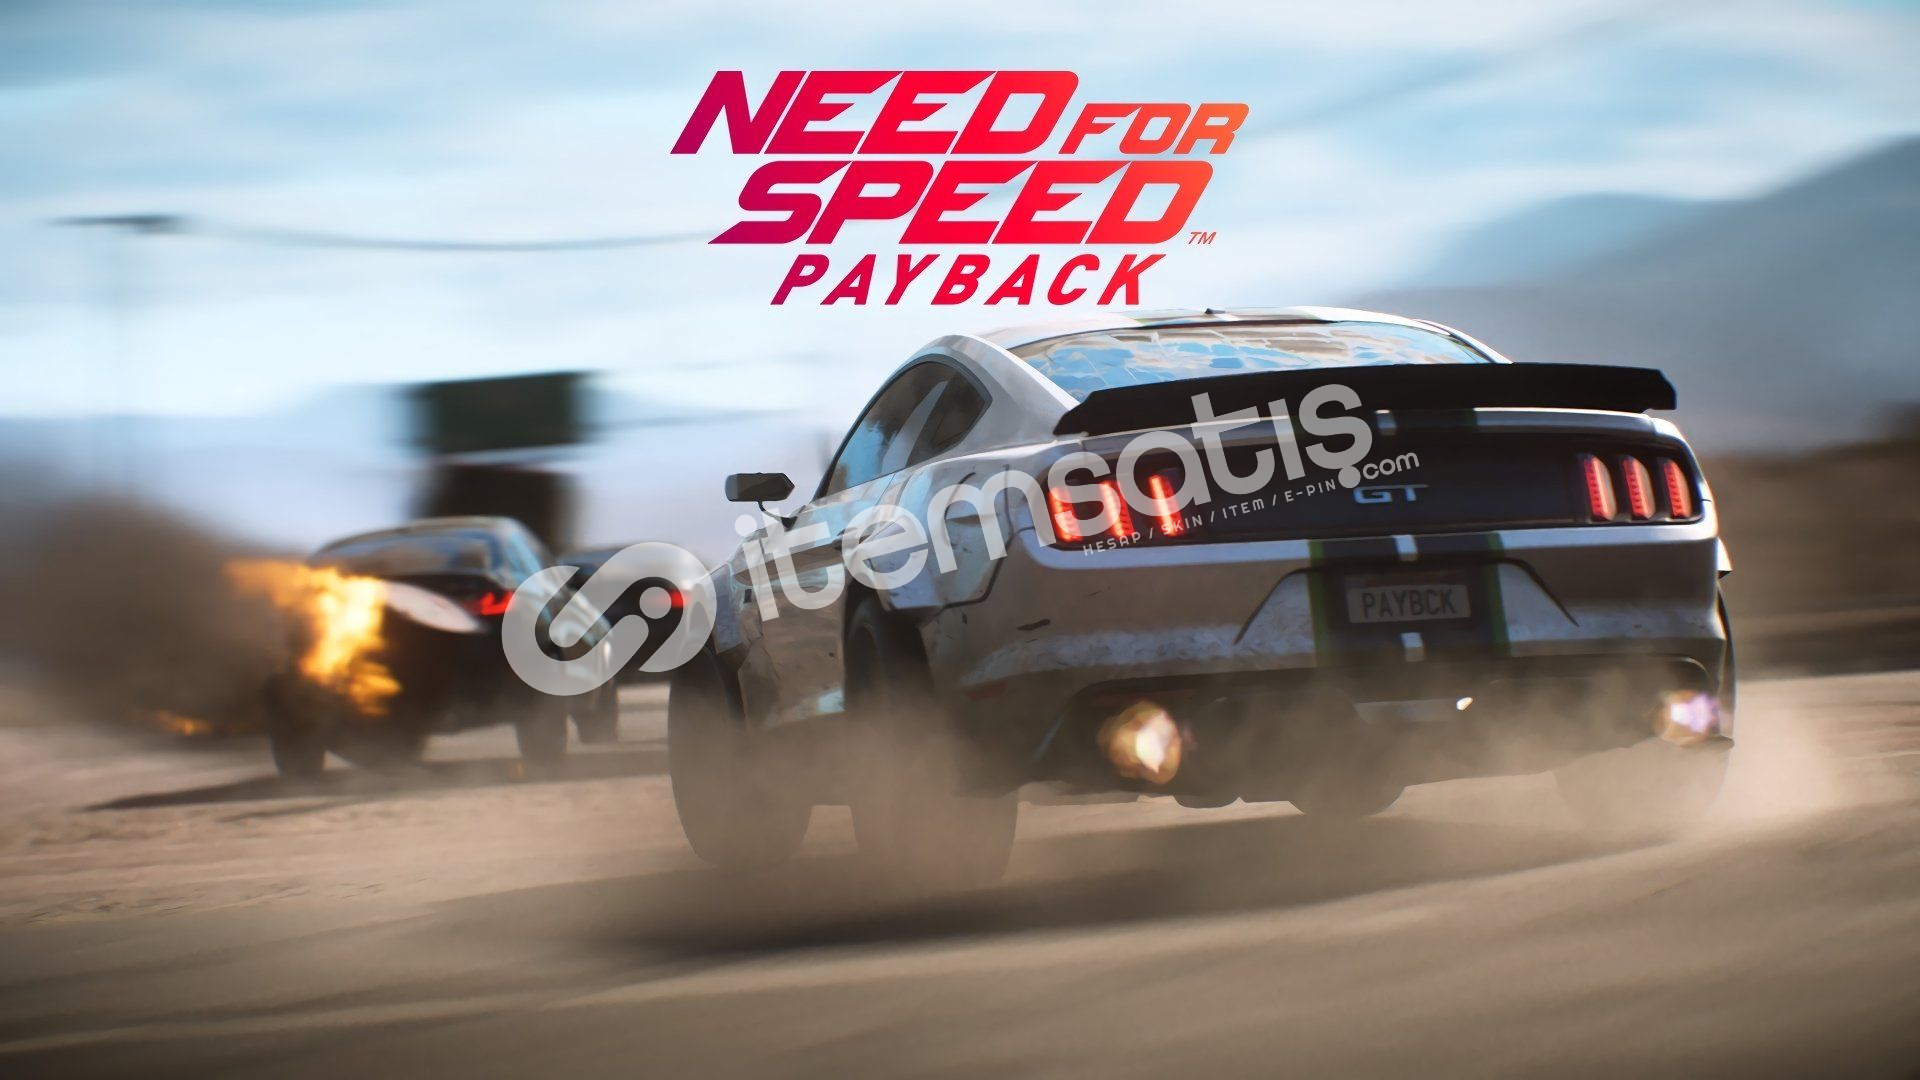 Need for Speed Payback (6.49TL)